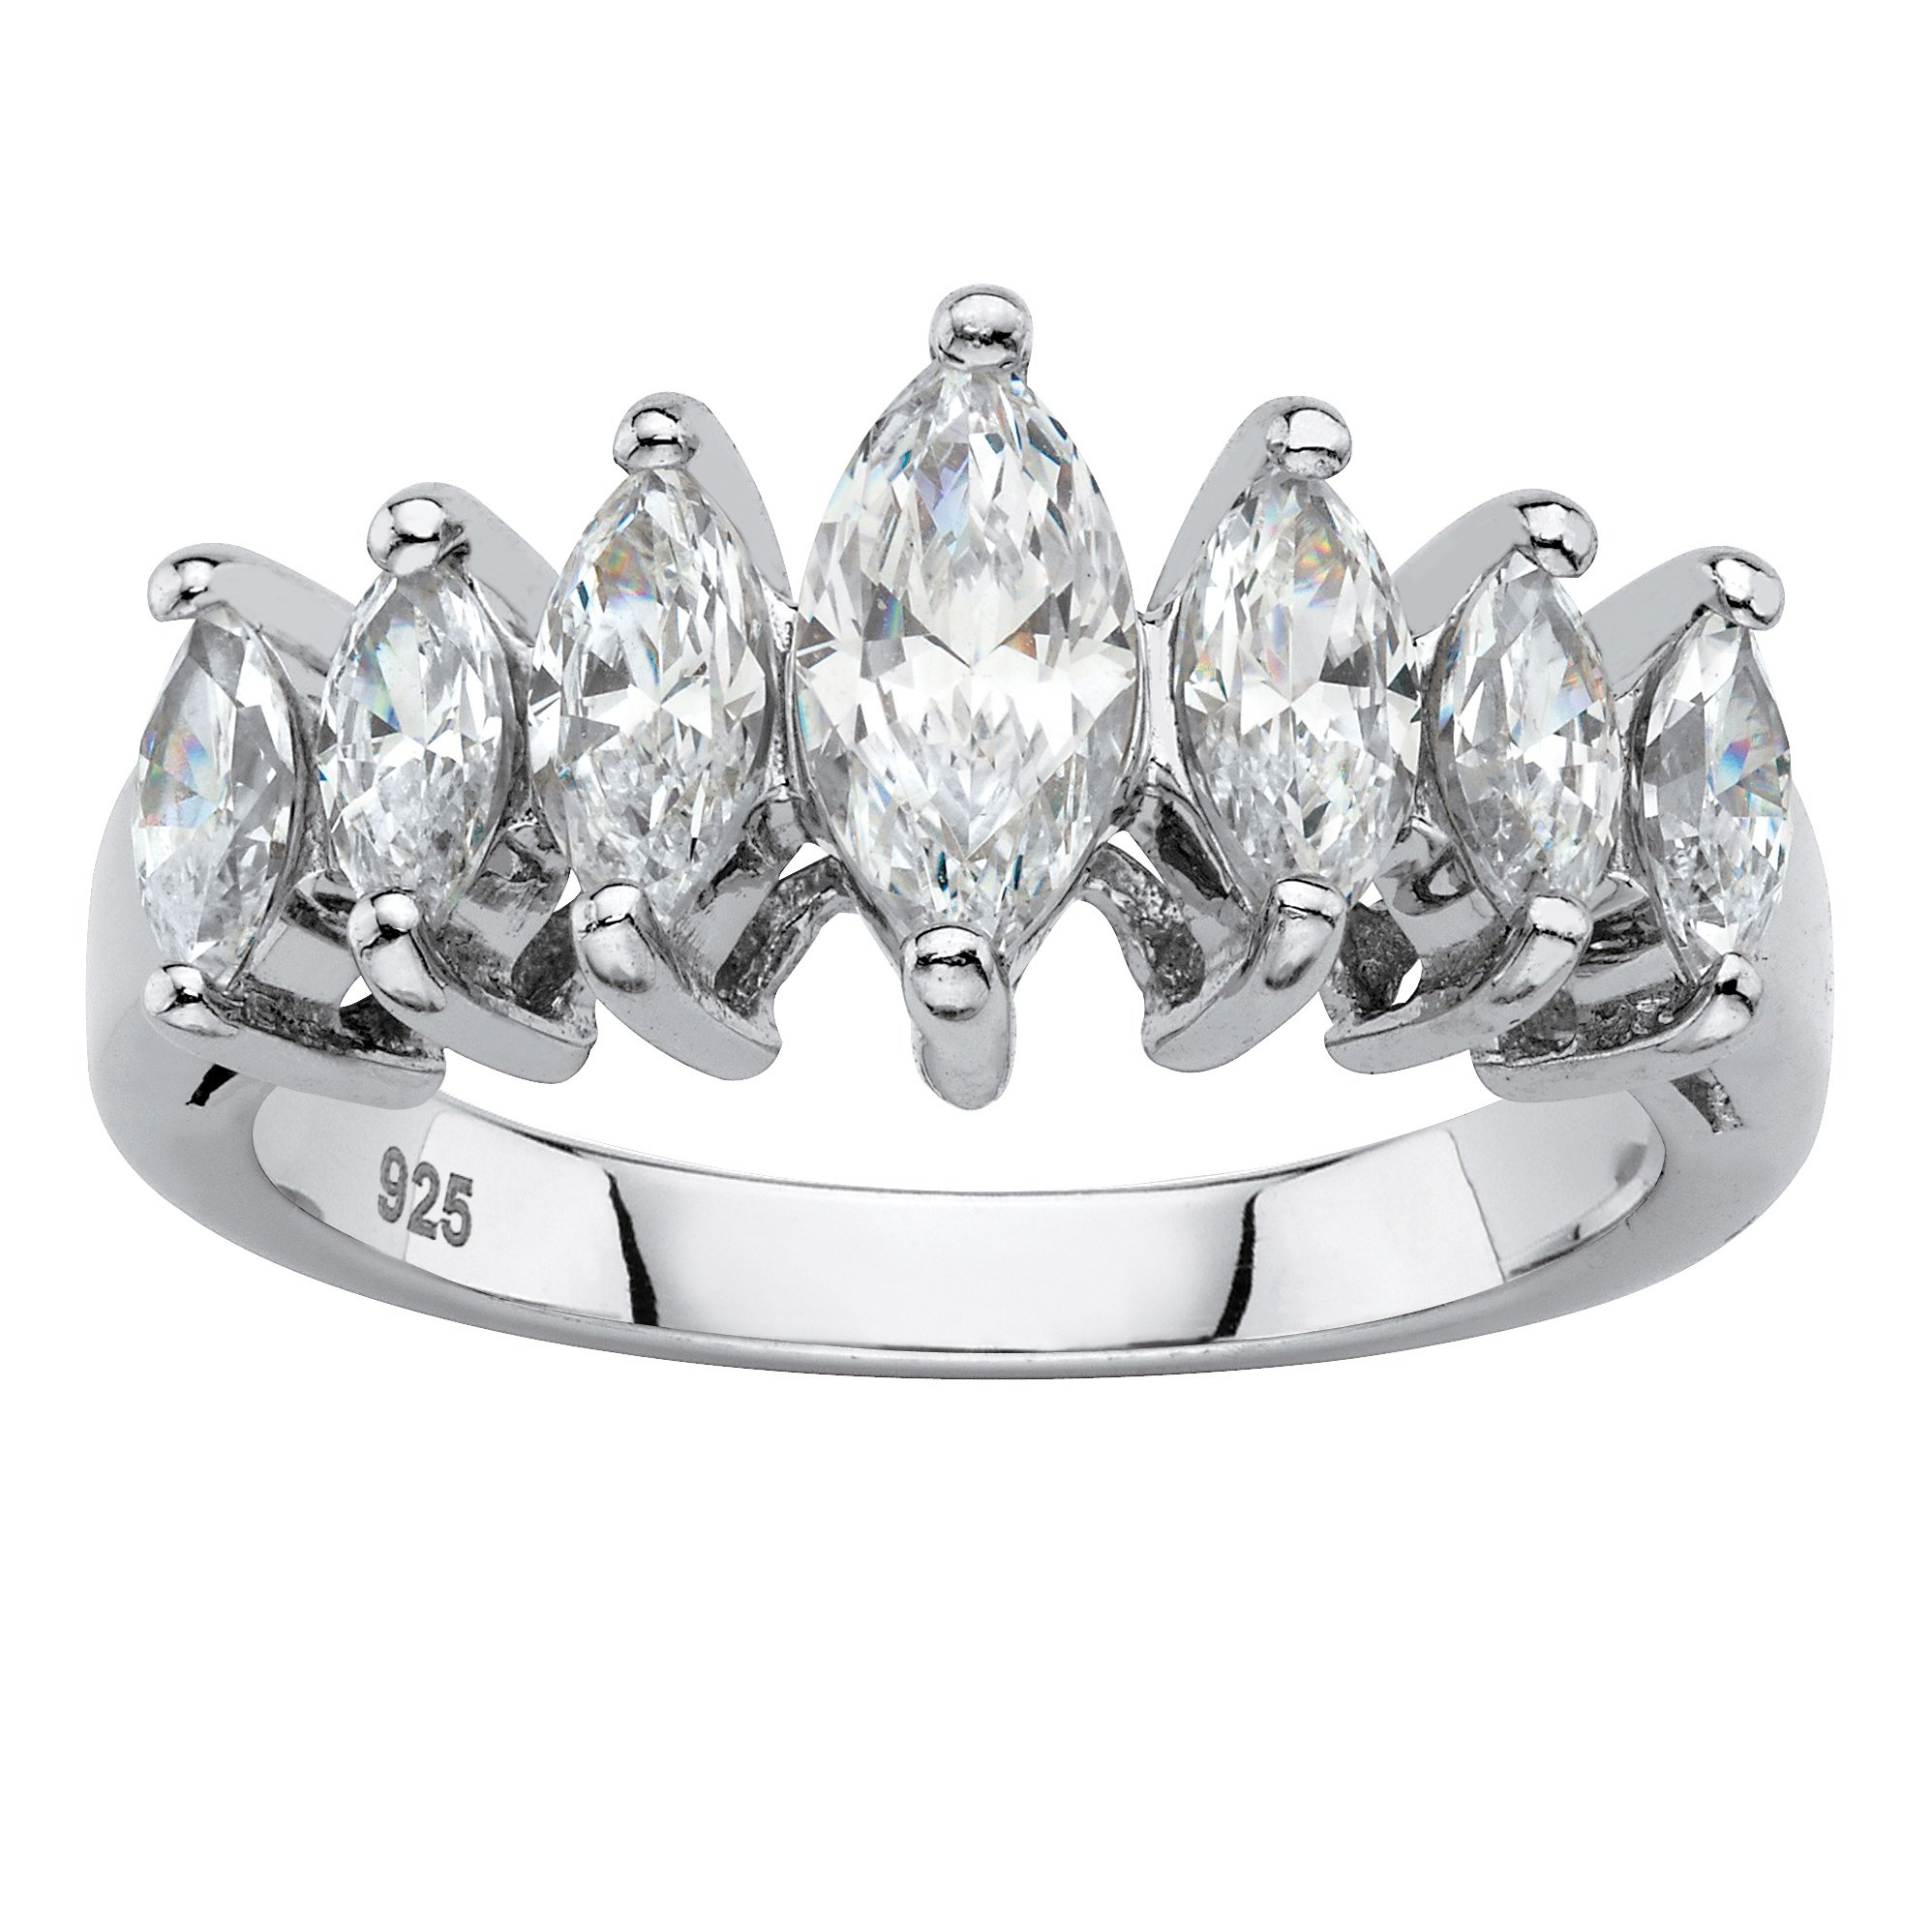 Platinum over Sterling Silver Marquise Cut Cubic Zirconia Anniversary Ring Size 8